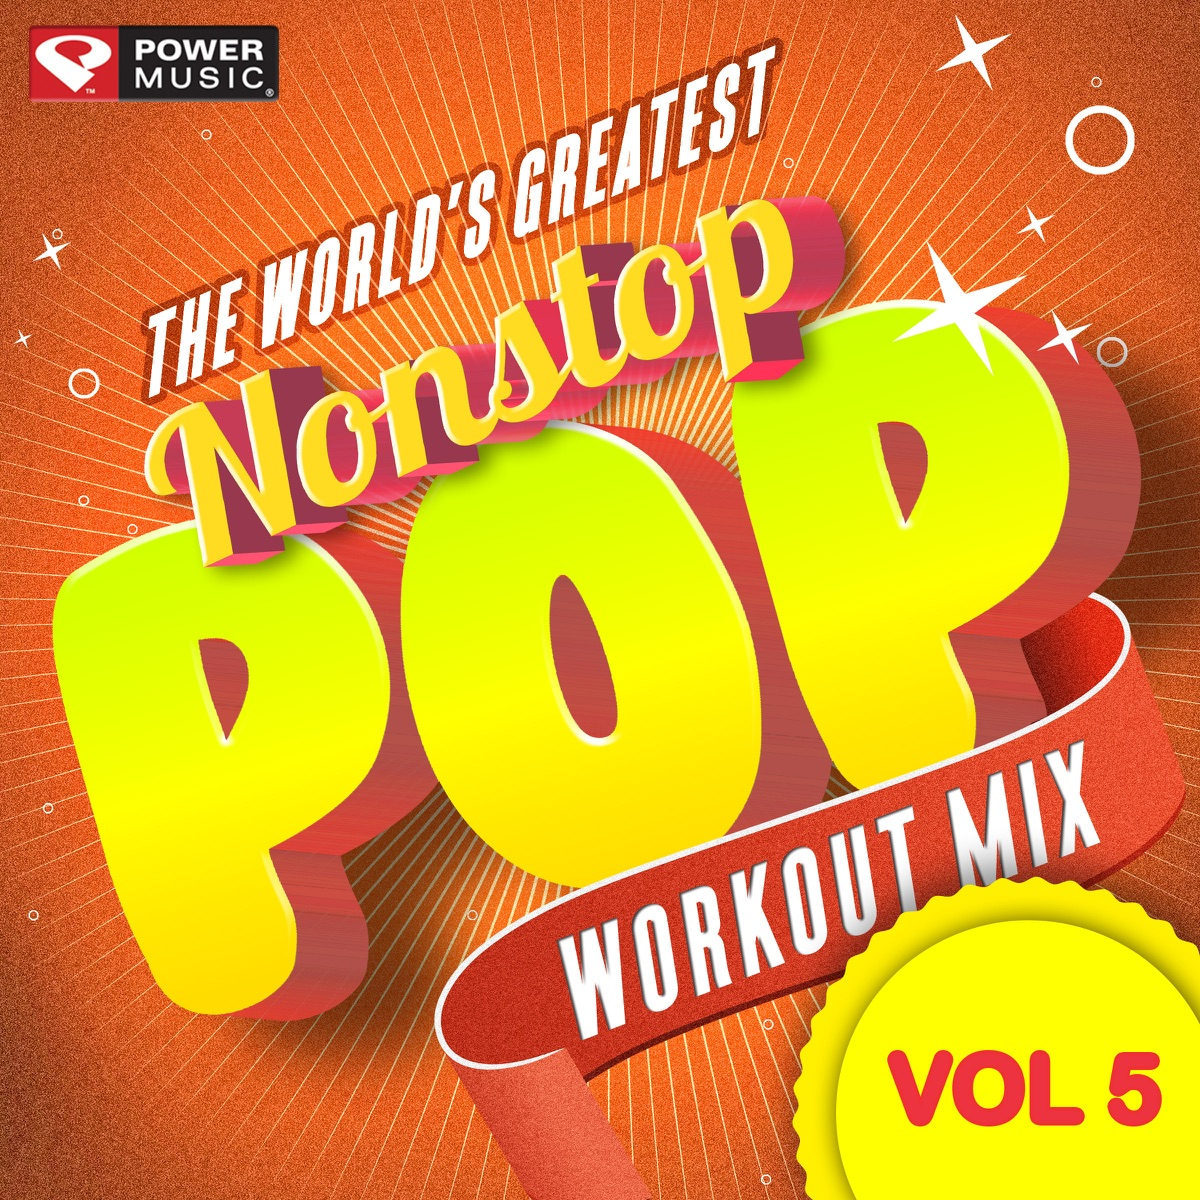 Nonstop Pop Workout Mix, Vol  5 Album Cover by Power Music